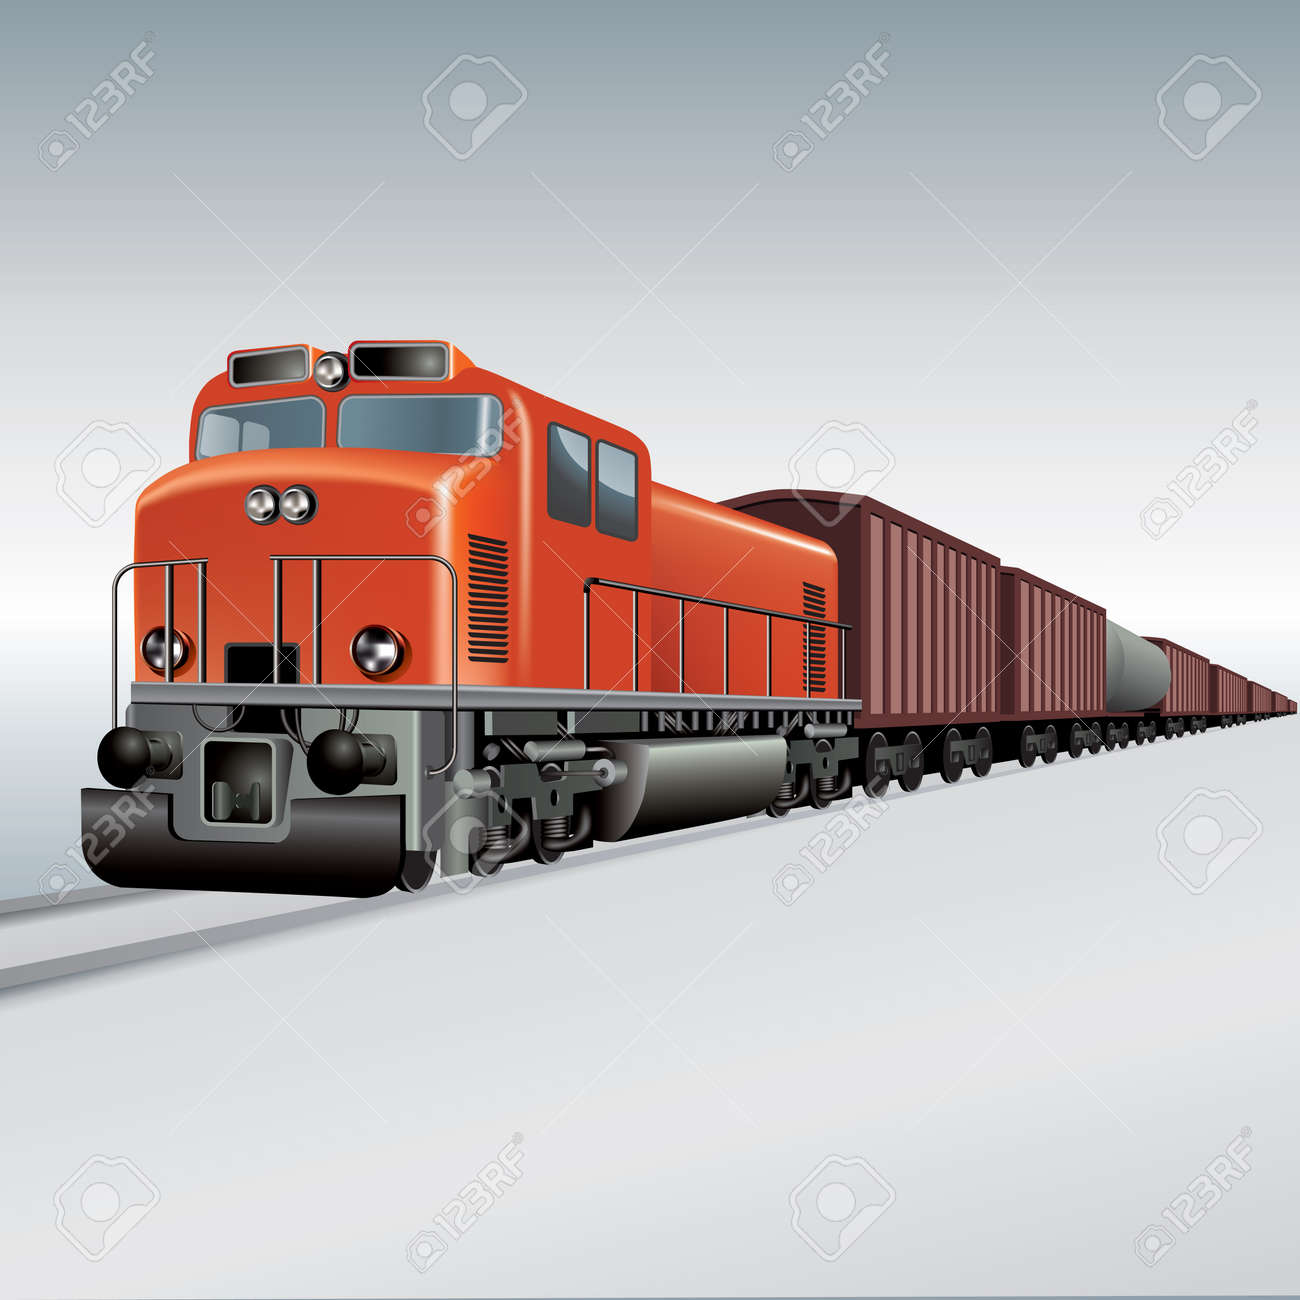 freight train images u0026 stock pictures royalty free freight train